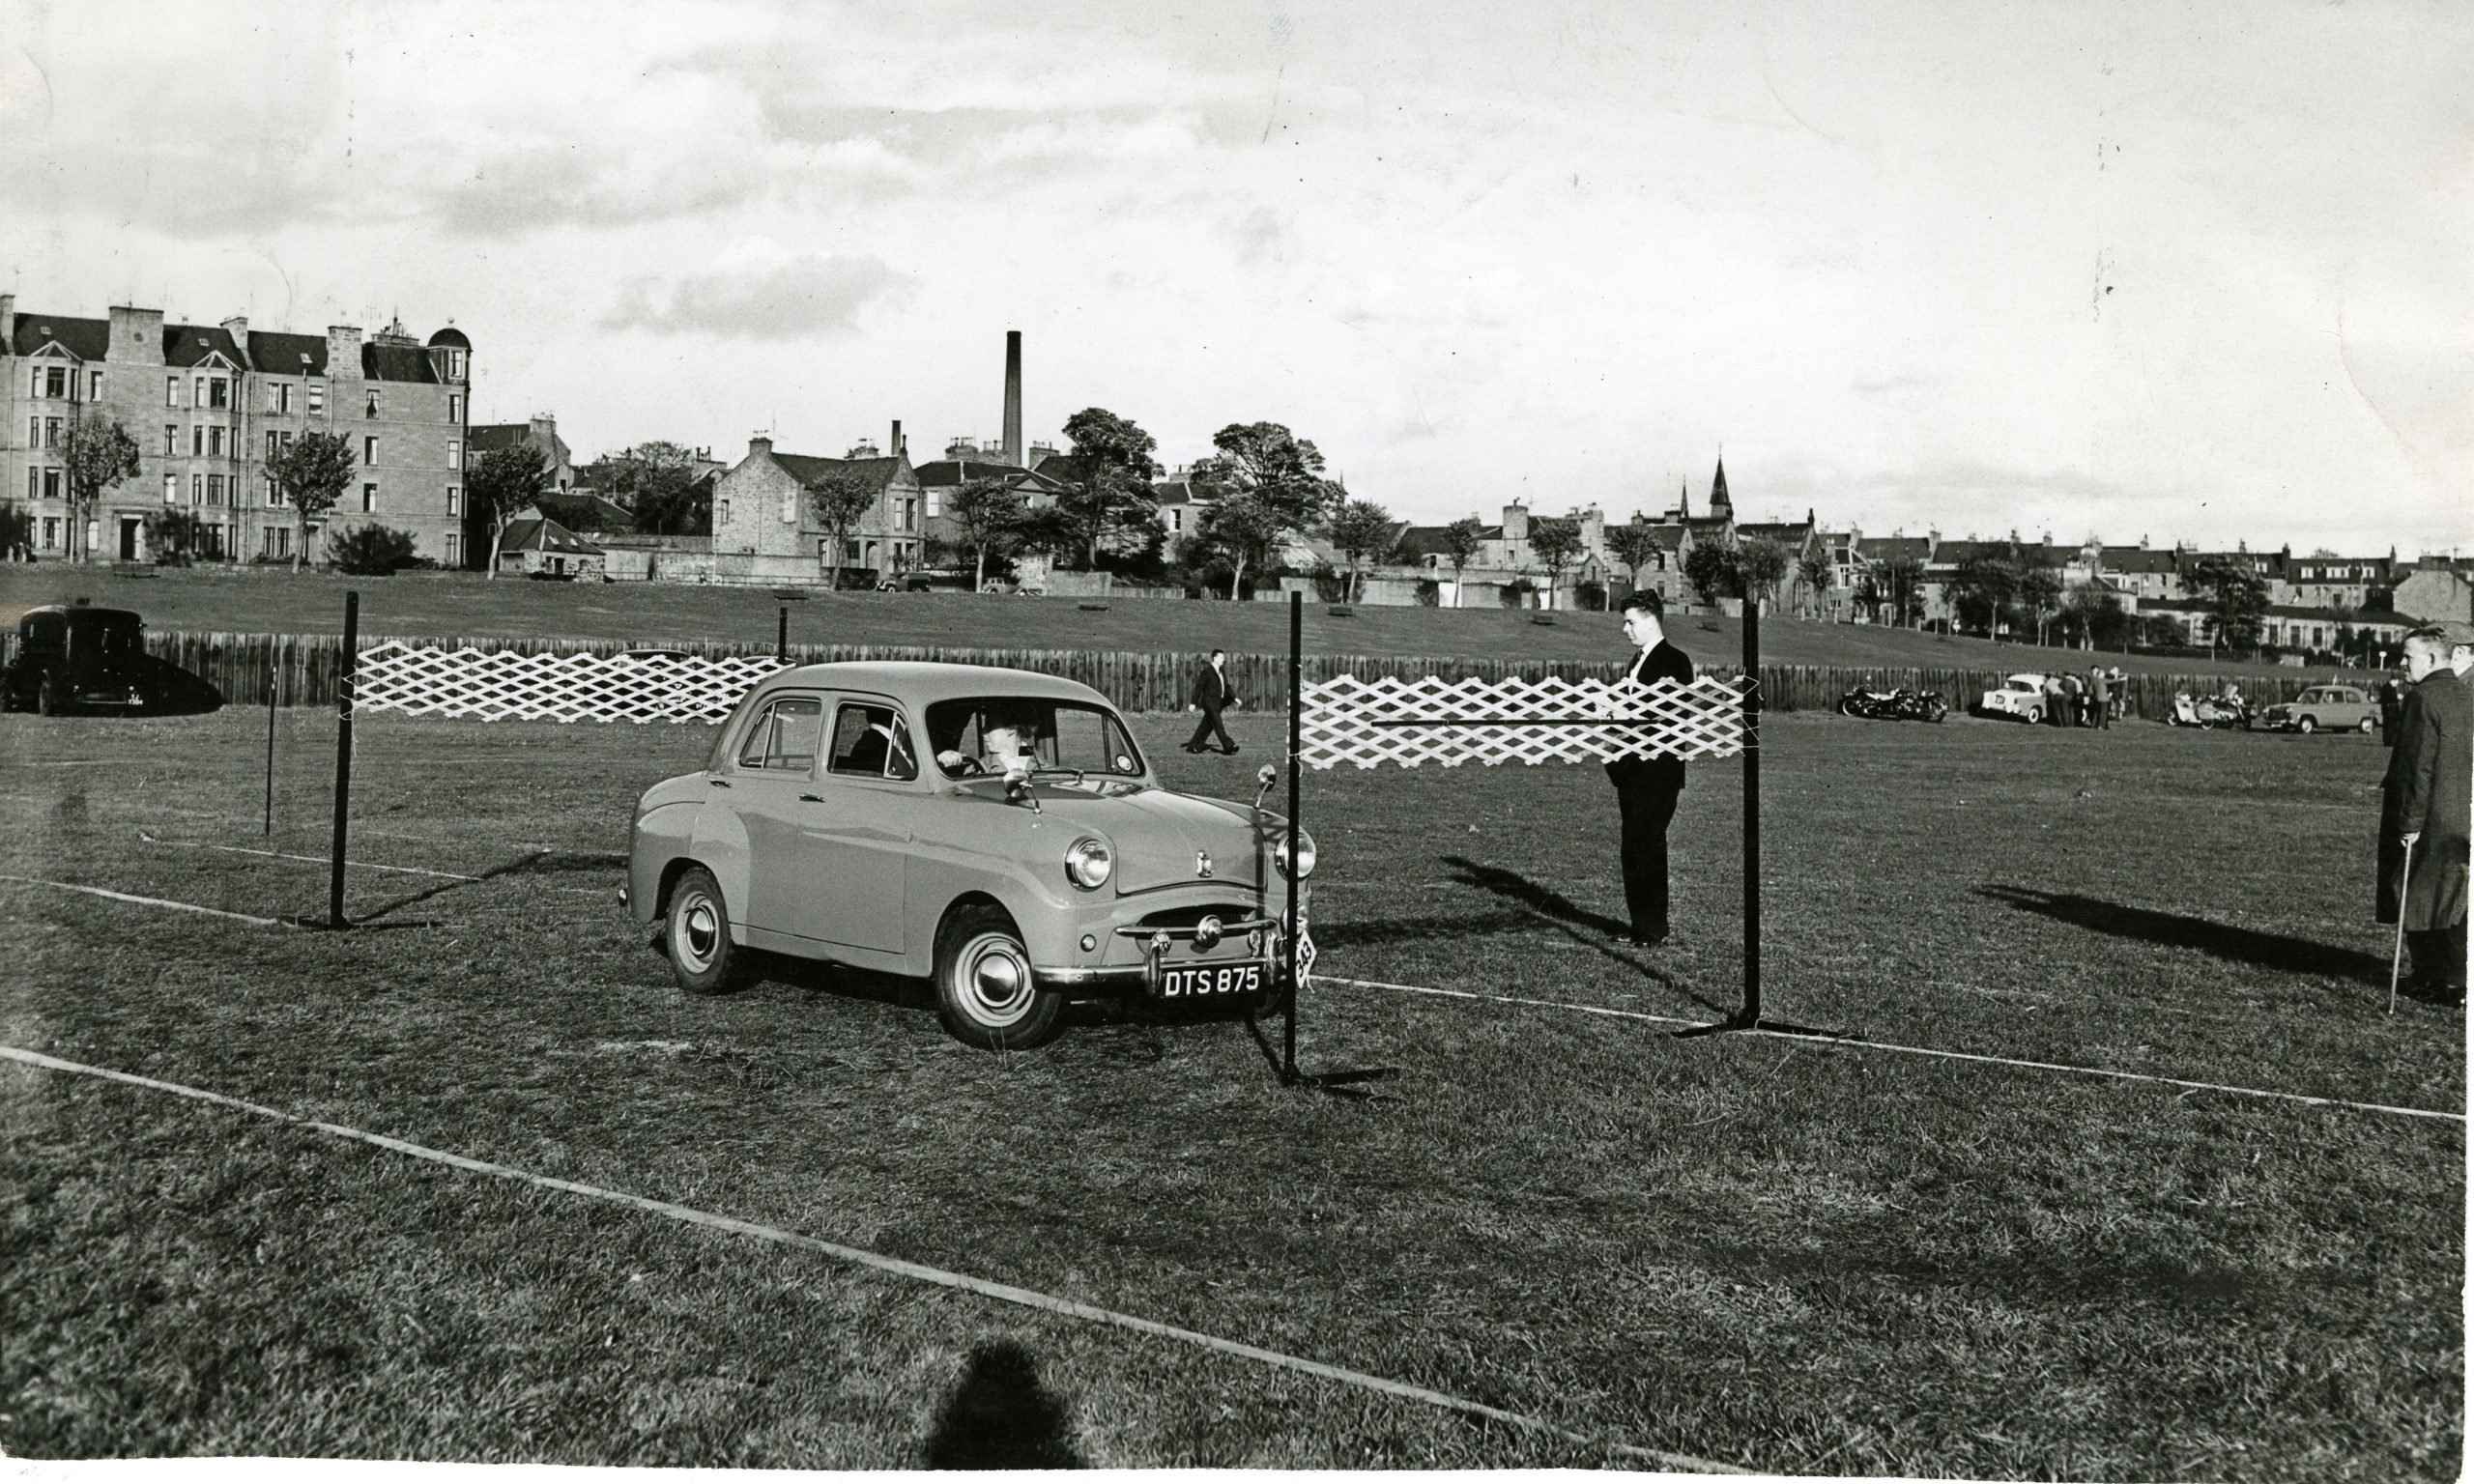 A car does a reversing test in a driving proficiency competition at Riverside Park, Dundee, in October 1959.